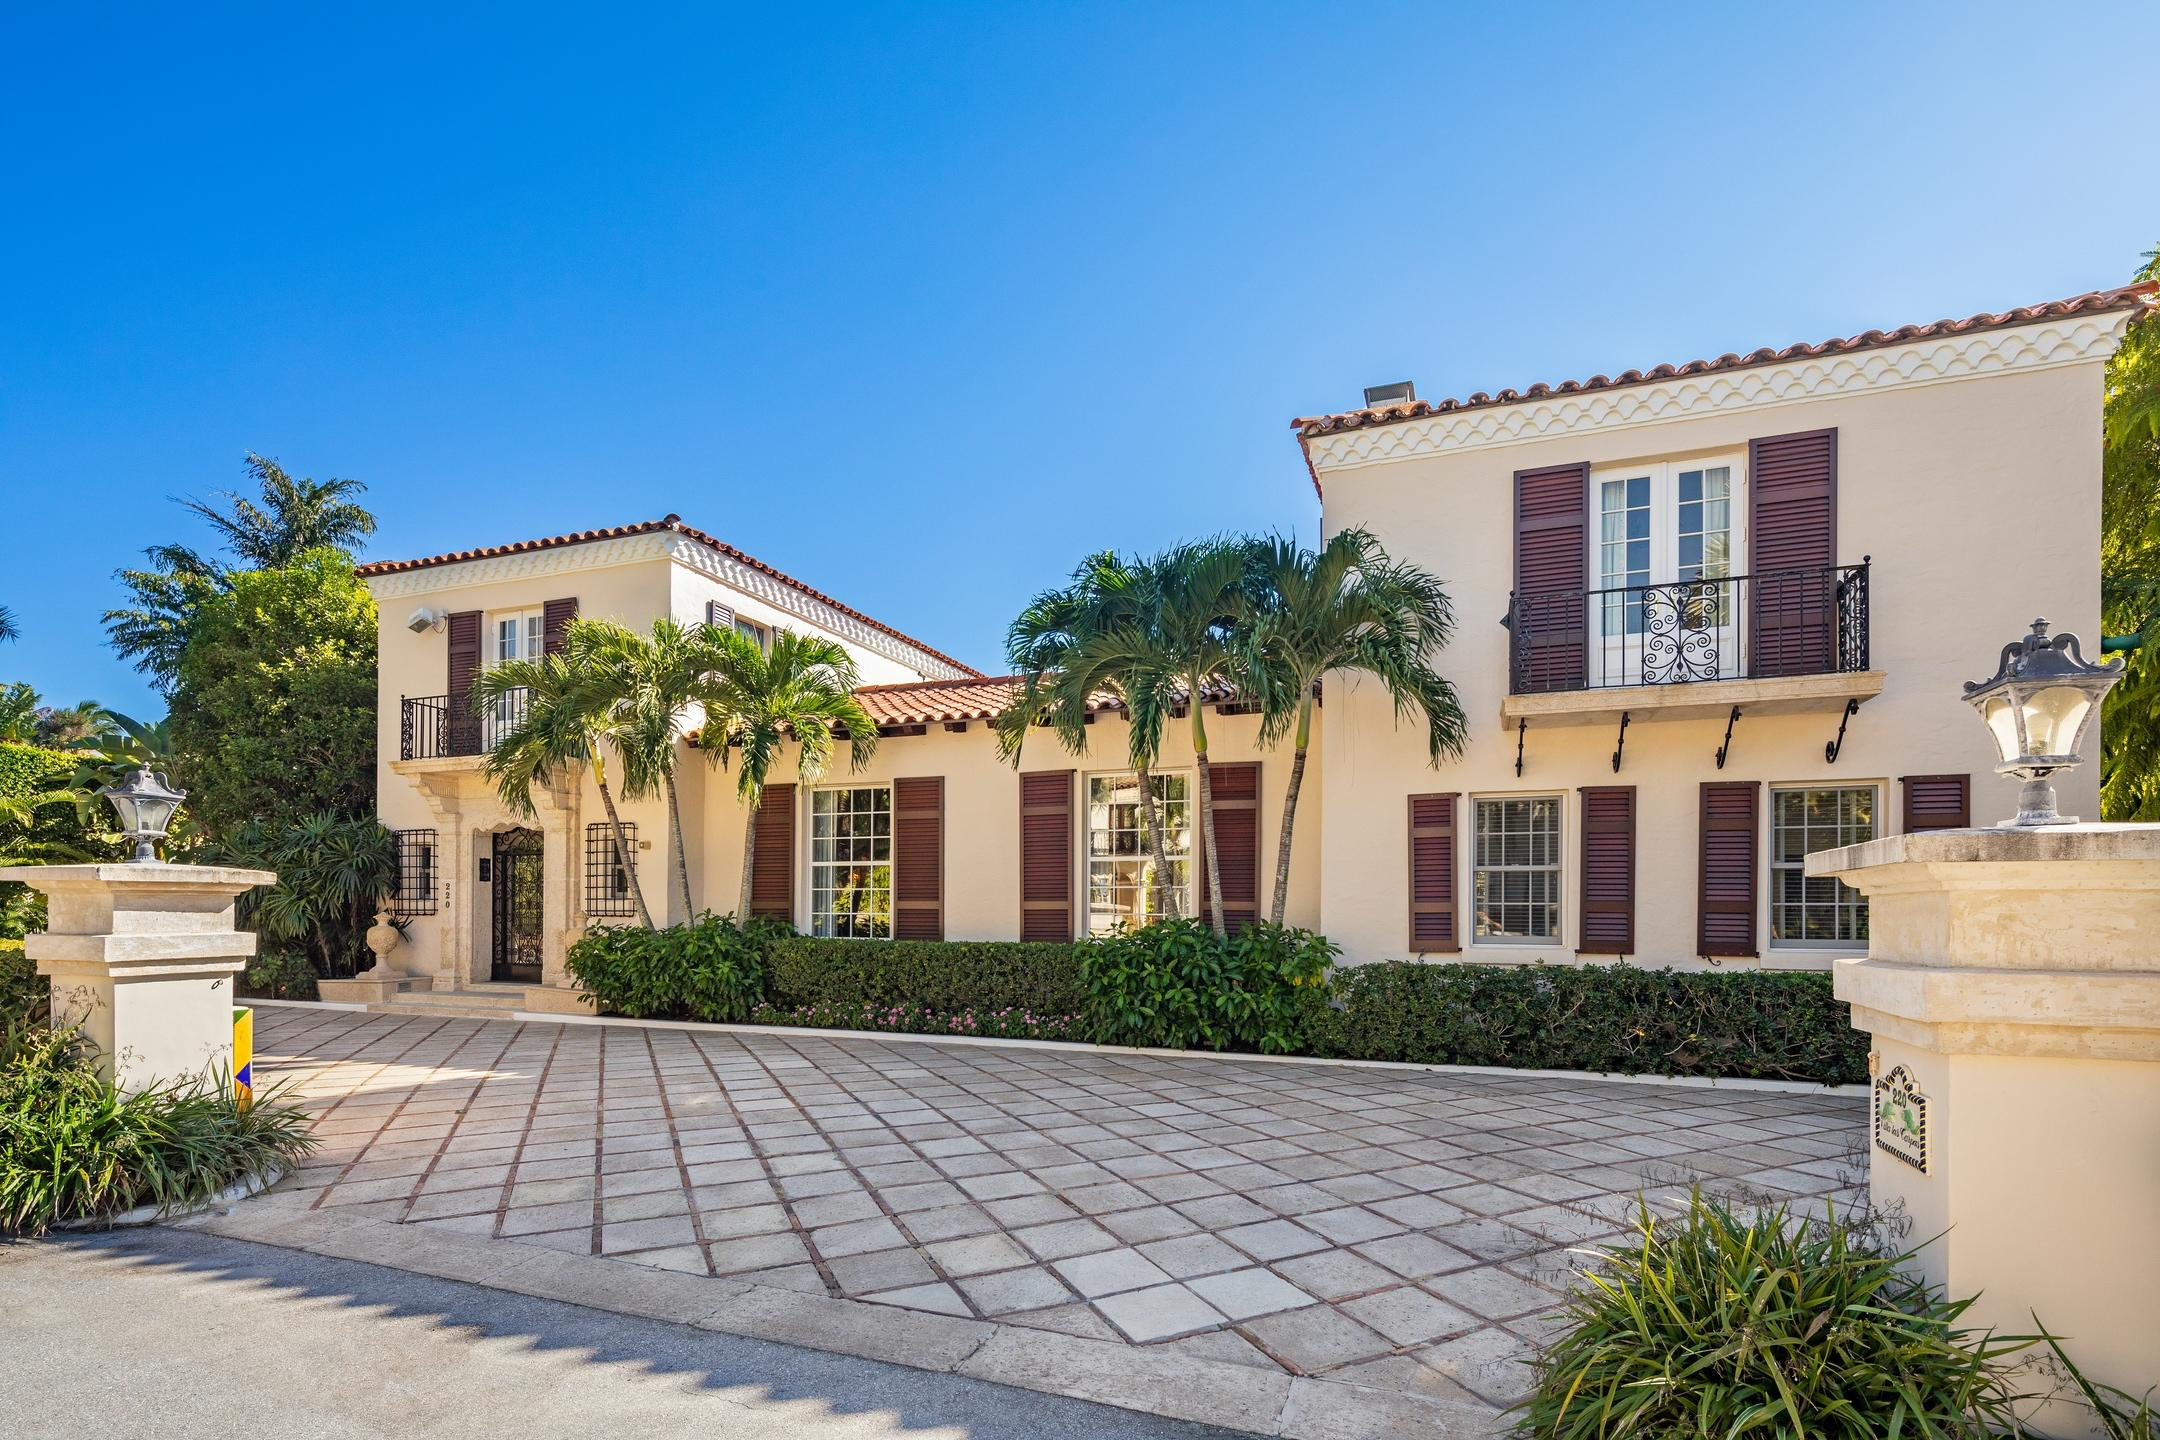 Home for sale in PB Palm Beach Florida